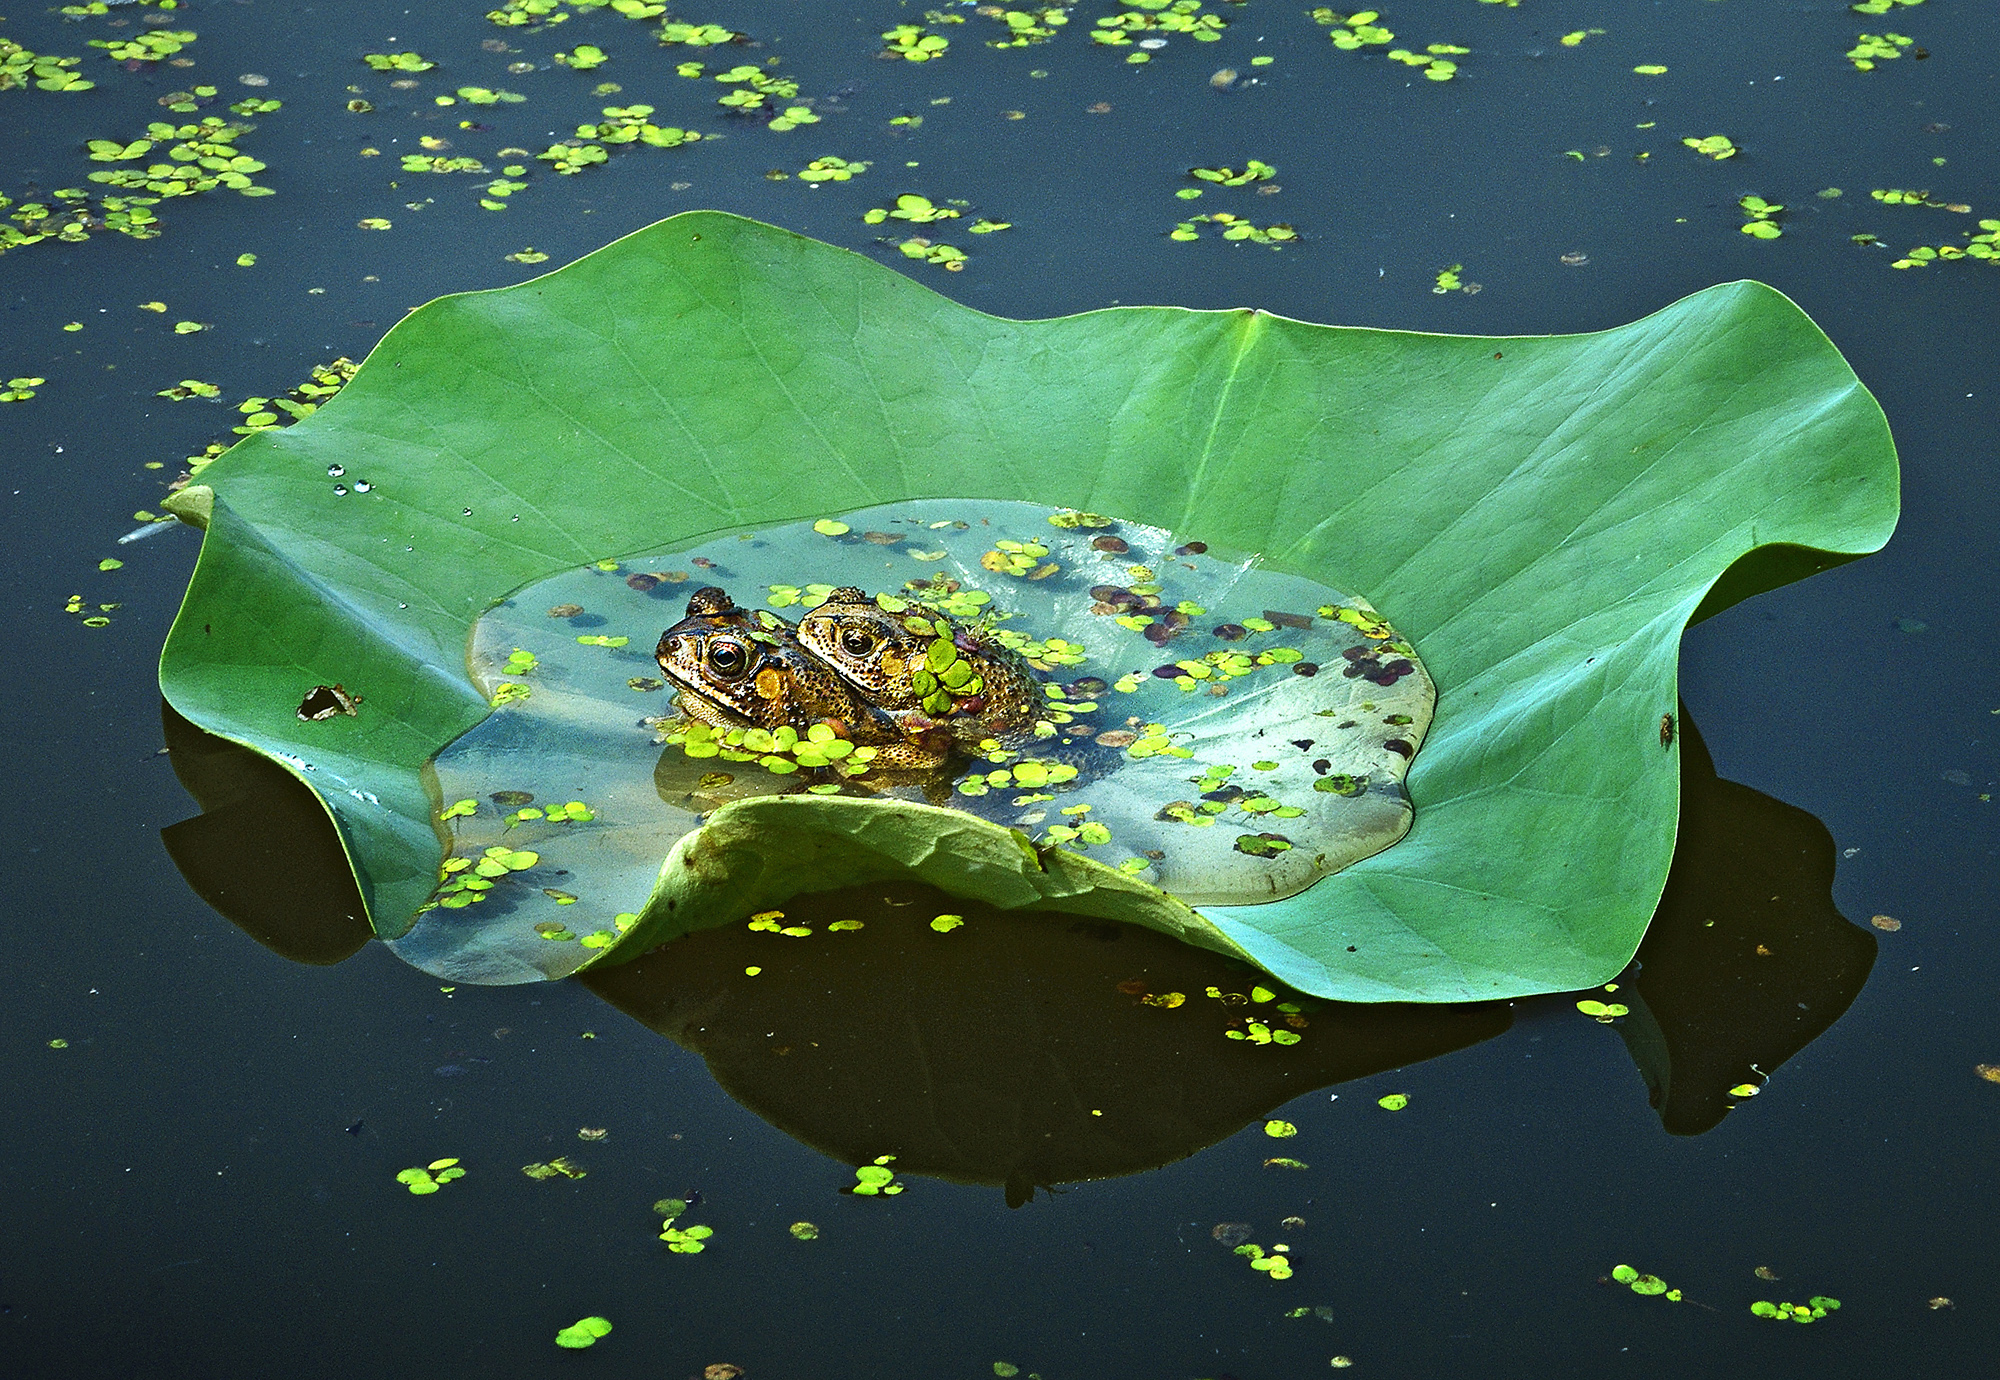 Frogs in water mating on a leaf